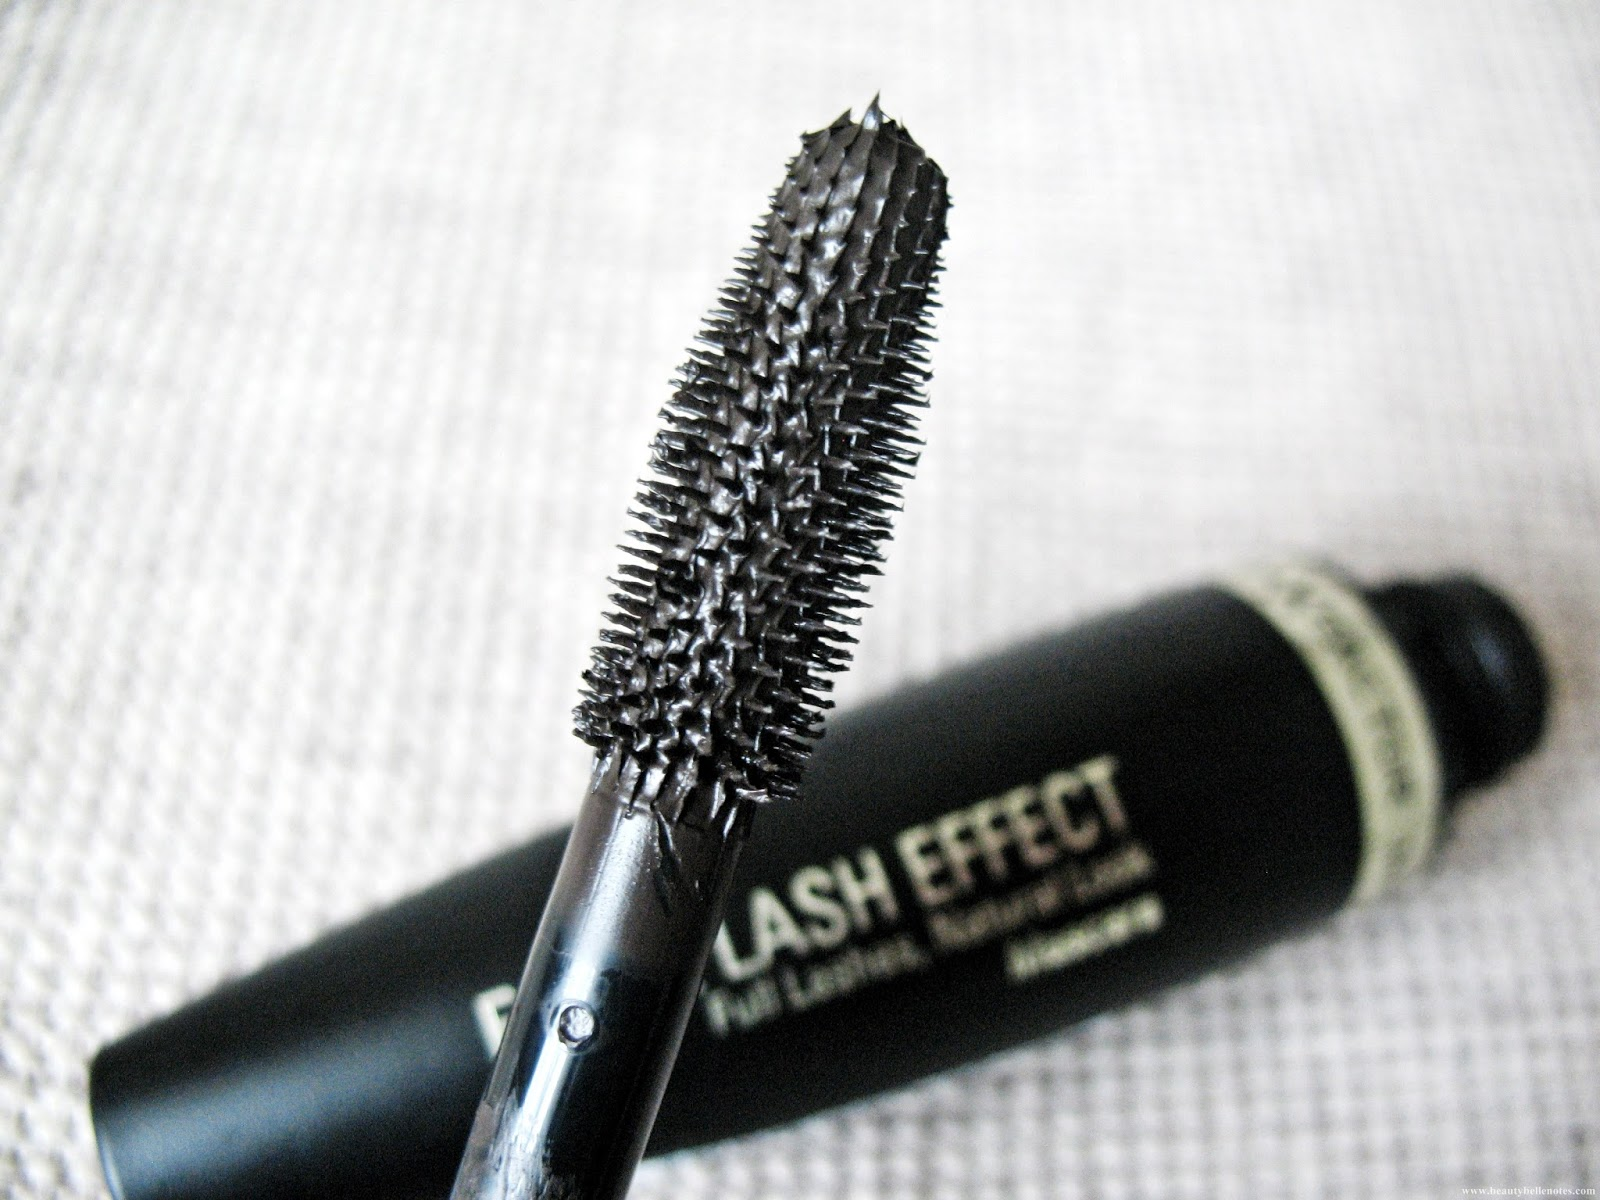 Max-Factor-False-Lash-Effect-Mascara-review-photo-03